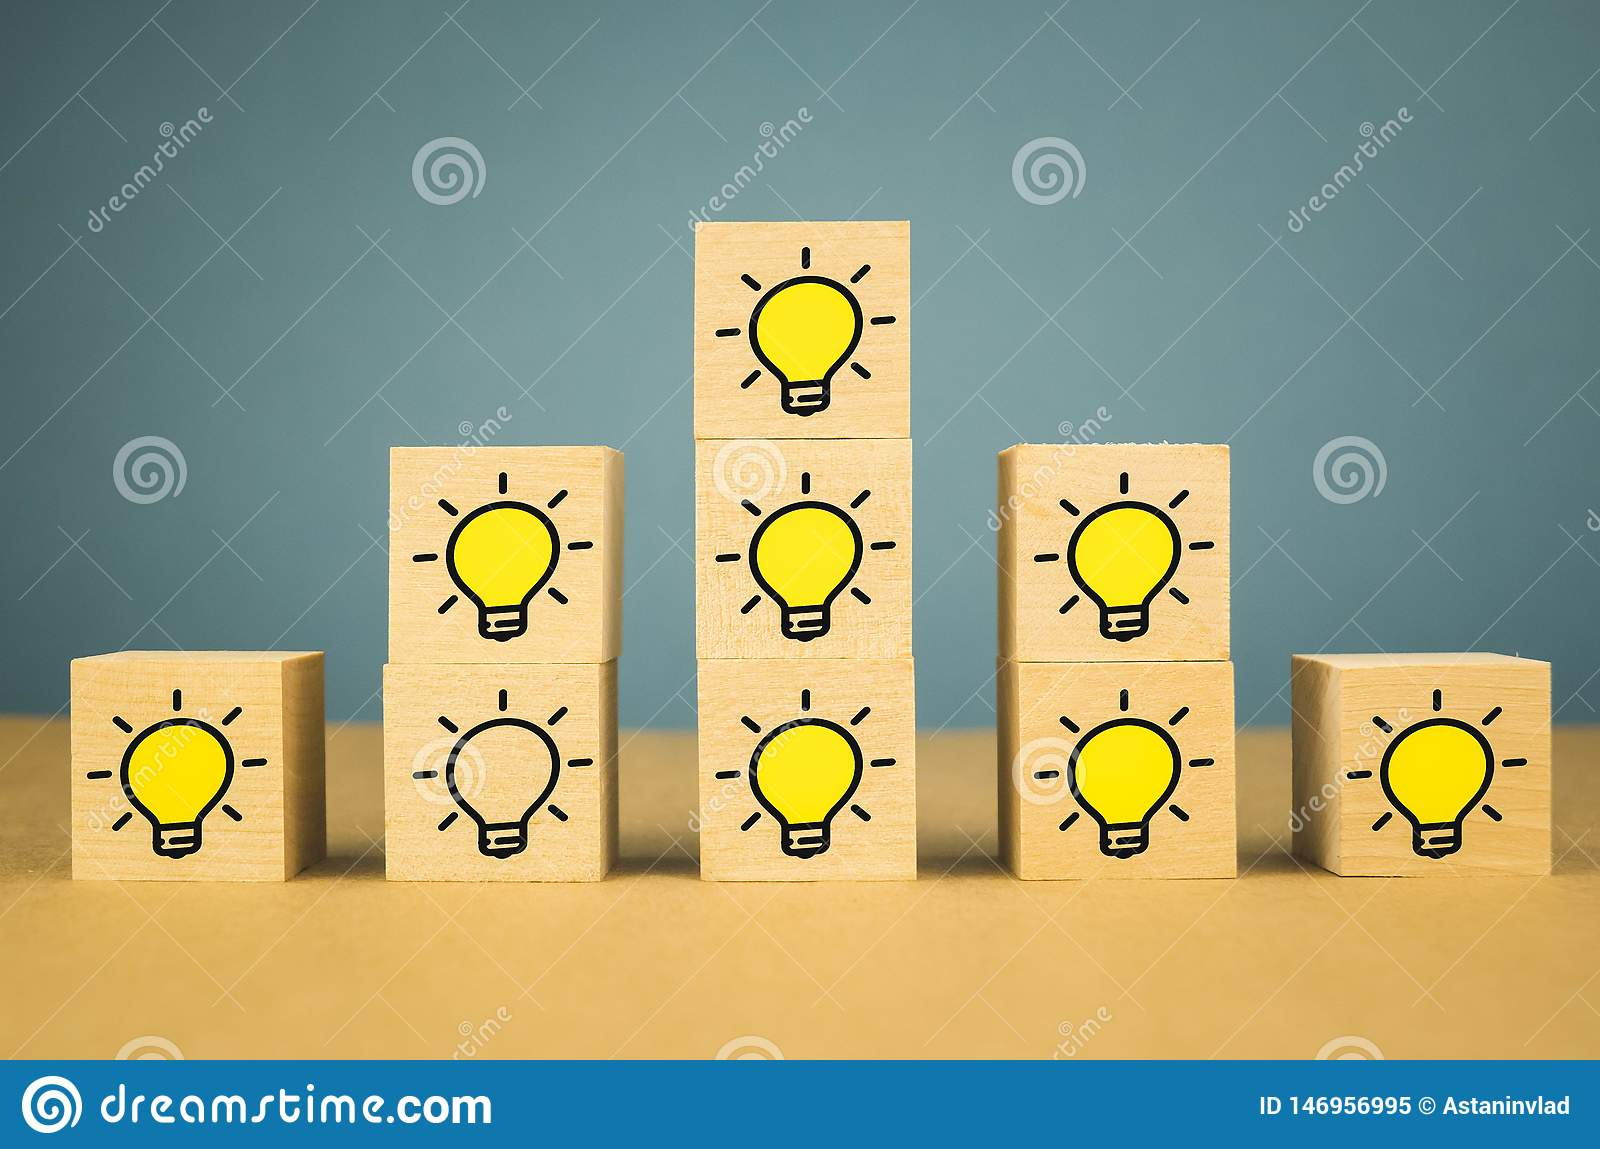 A lot of glowing light bulbs on wooden cubes and one light bulb is not burning, on a blue background